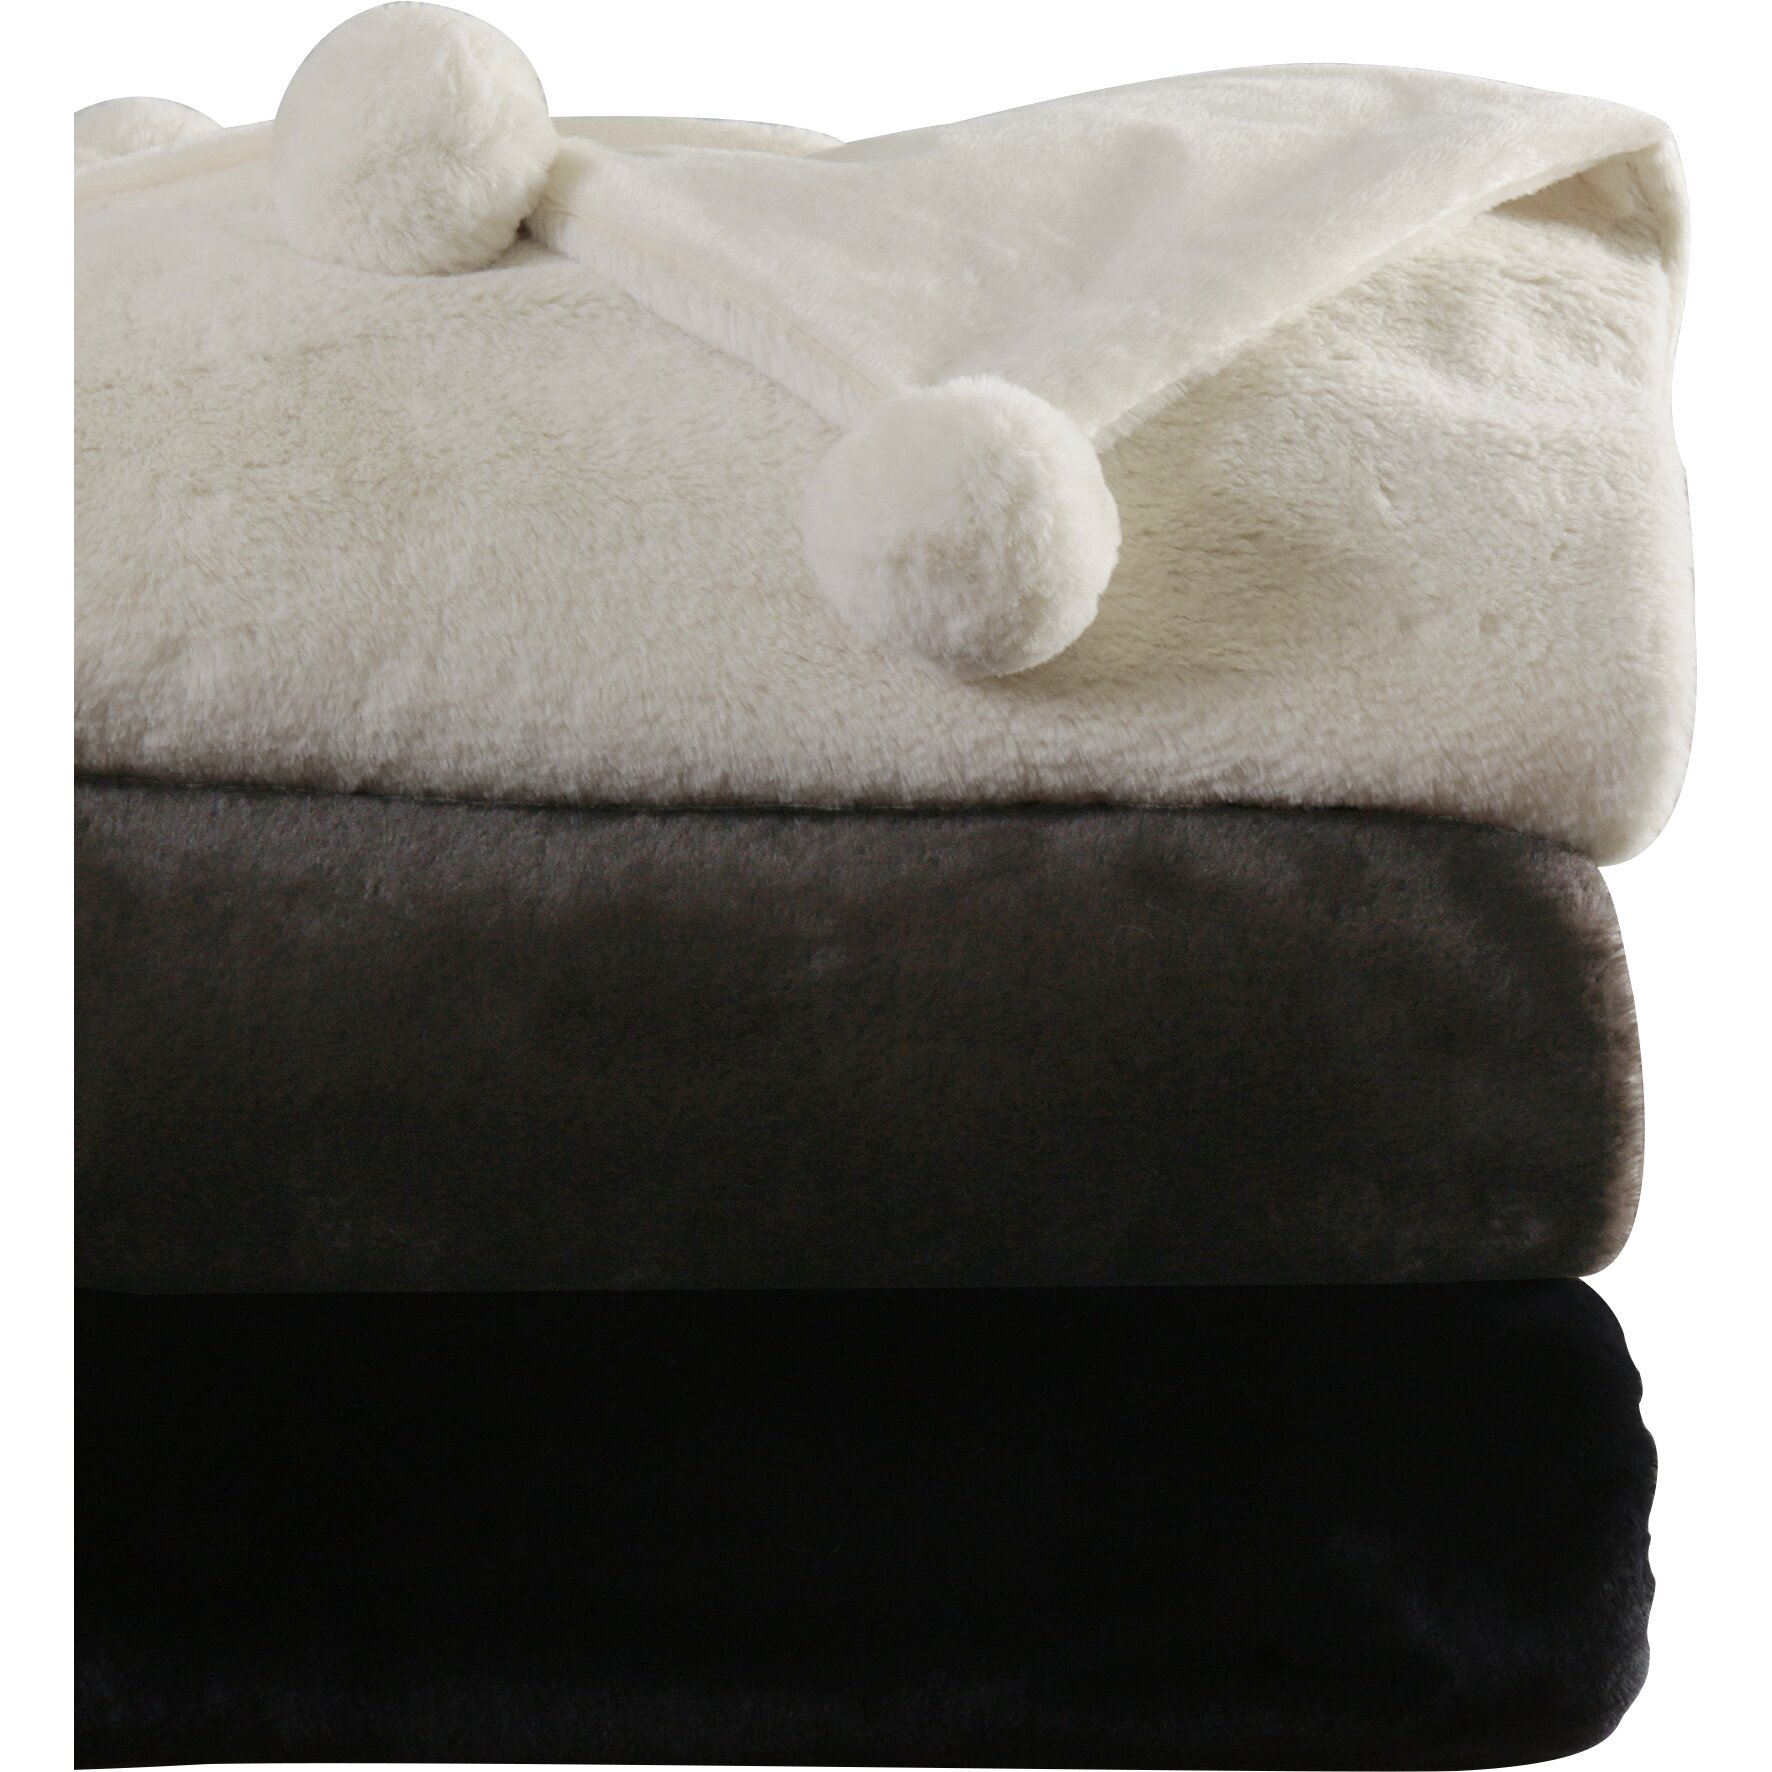 Faux Fur Throw And Pillow Set : Best Home Fashion, Inc. Luxe Faux Fur Pom Pom Throw Blanket and Pillow Set & Reviews Wayfair